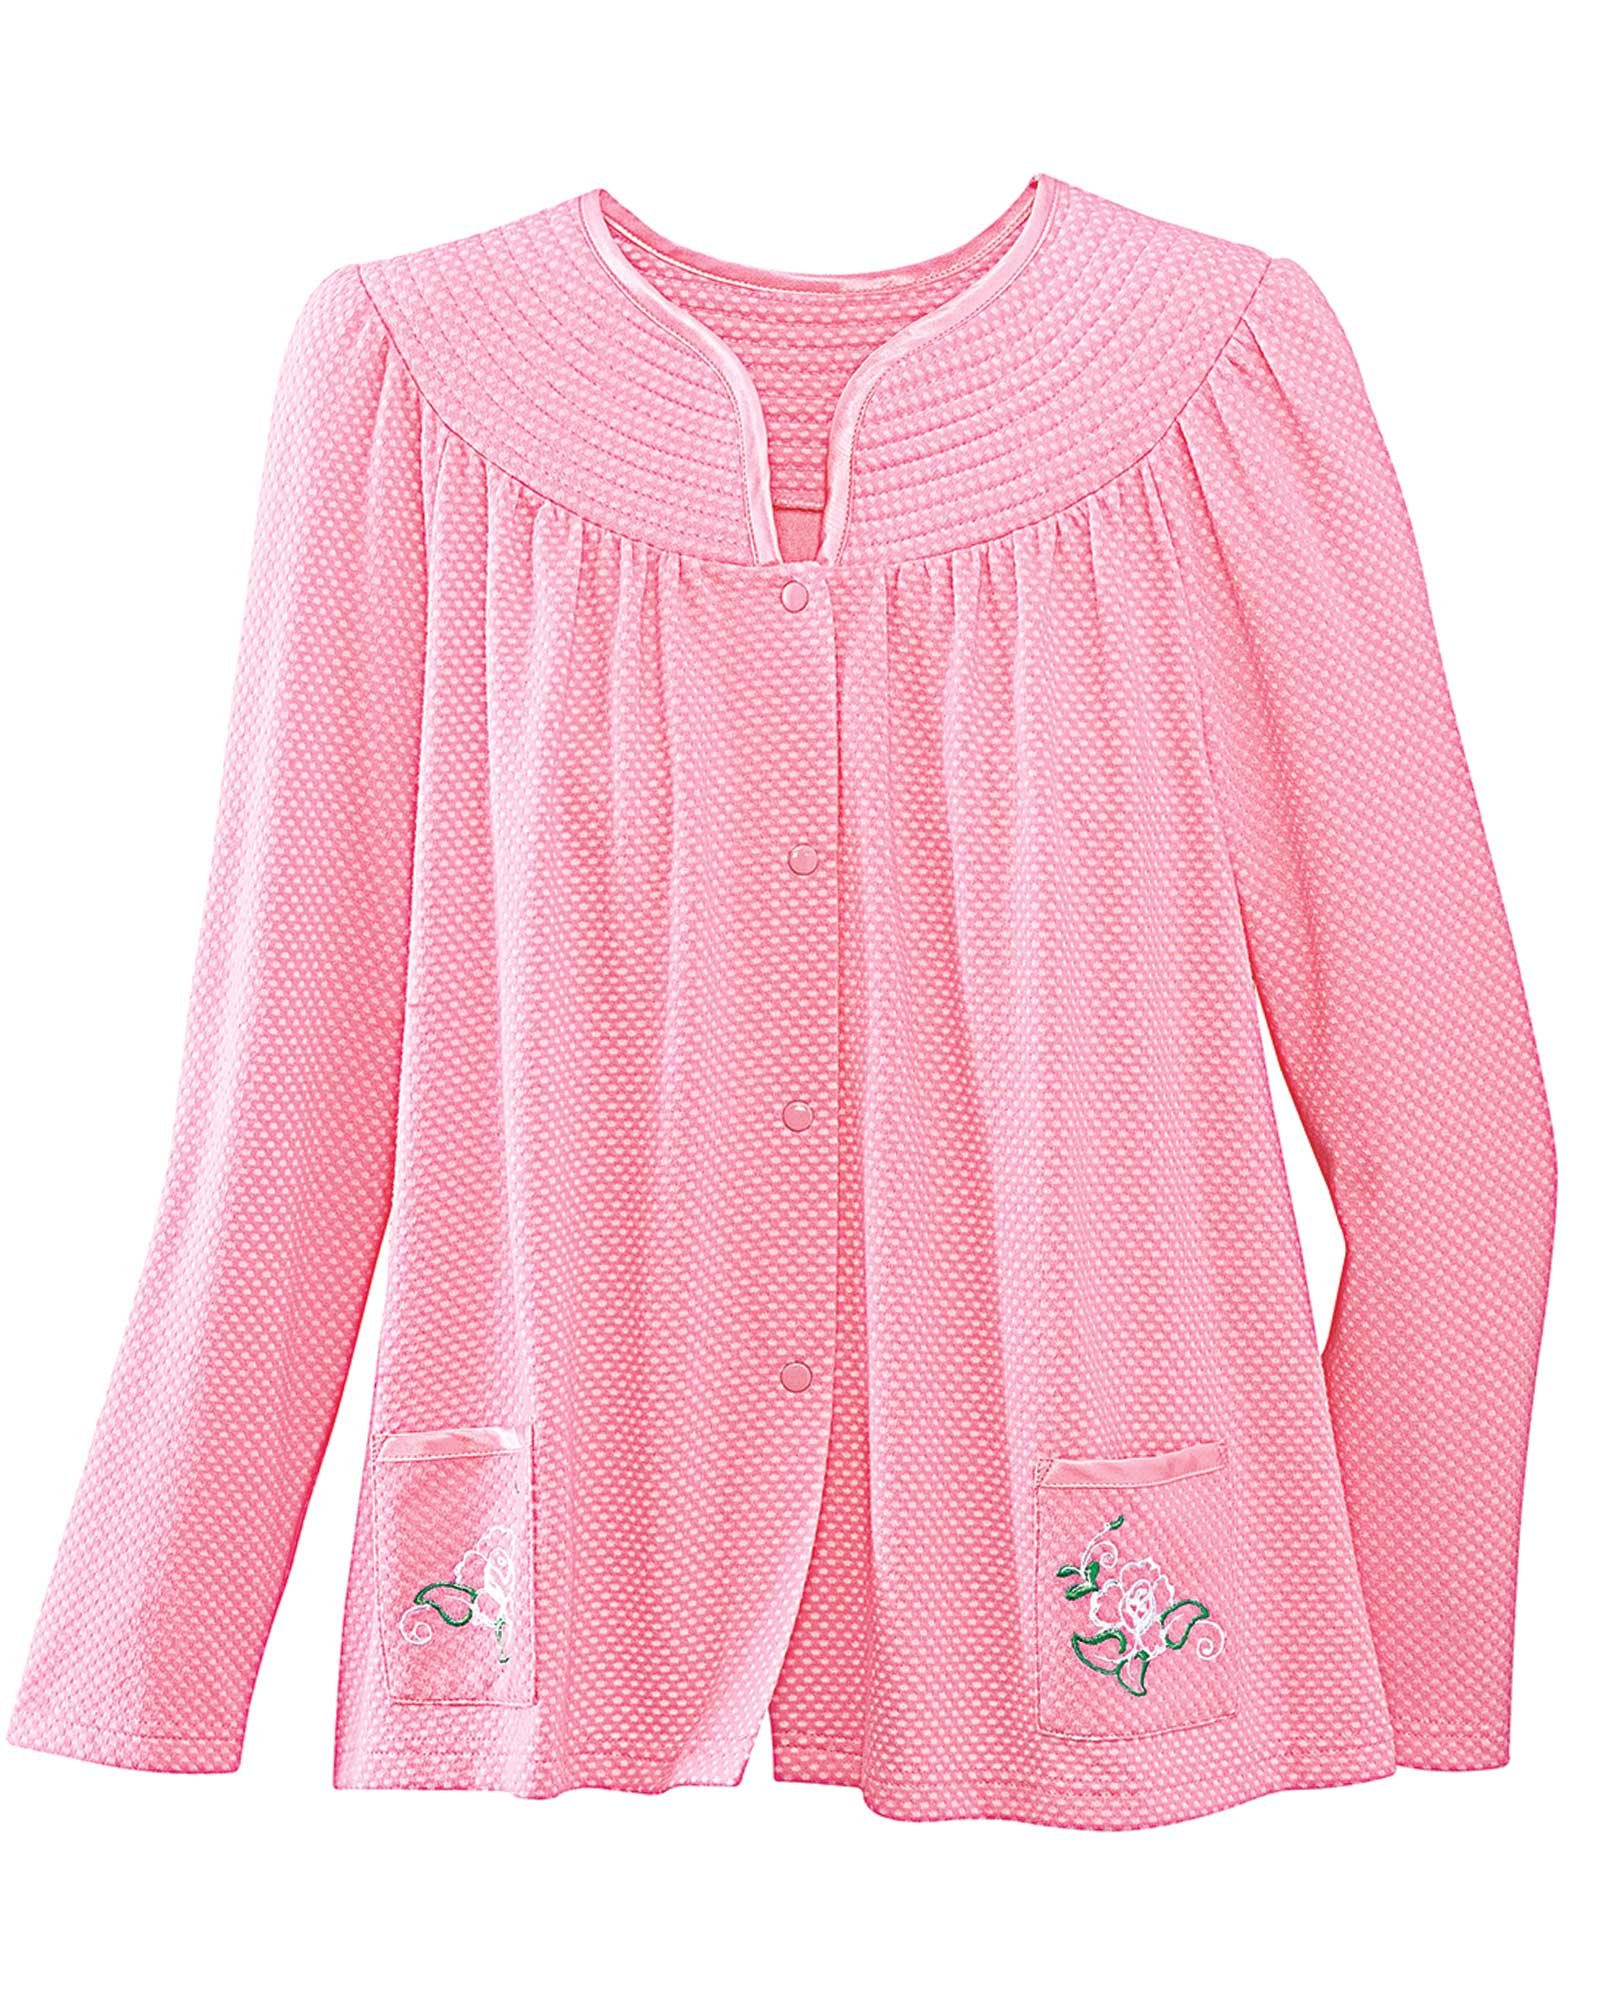 National Trapunto Yoke Bed Jacket, Rose, Large